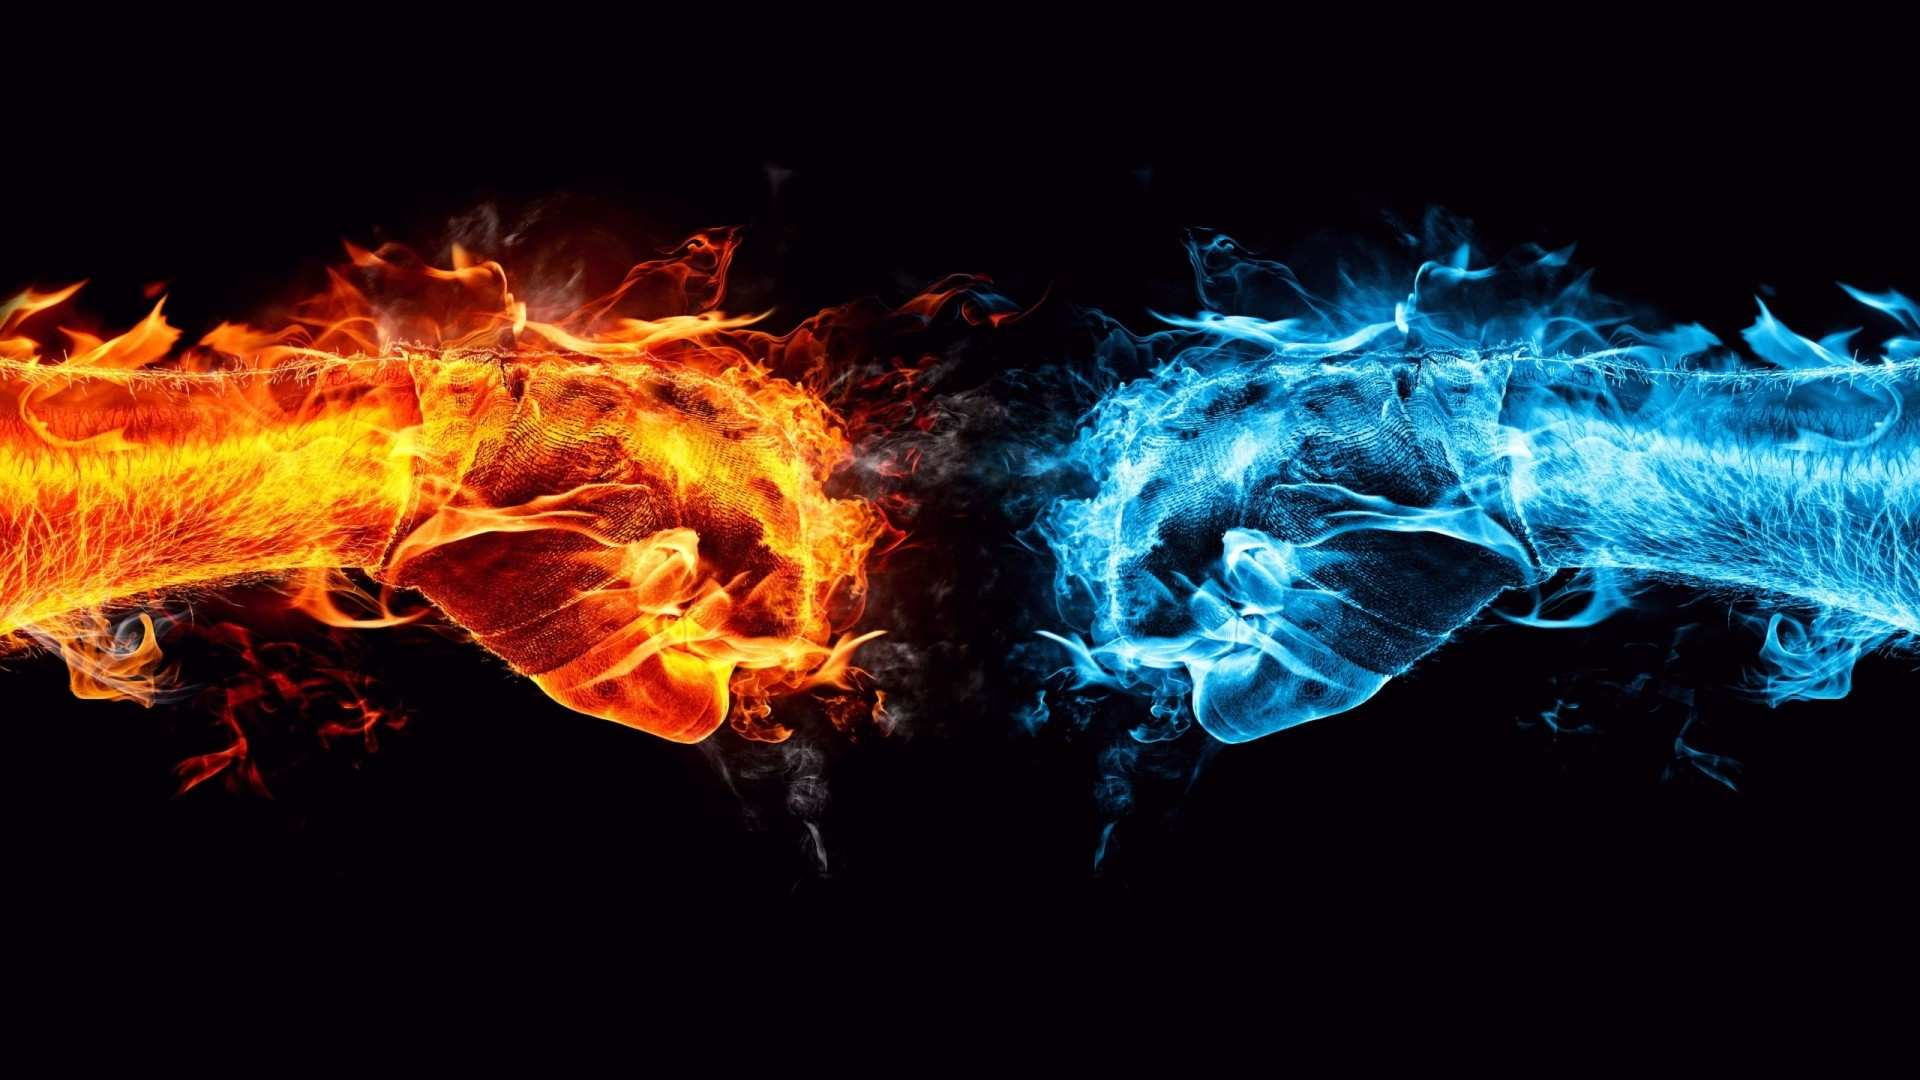 Awesome Fire wallpaper 1920x1080 32647 1920x1080